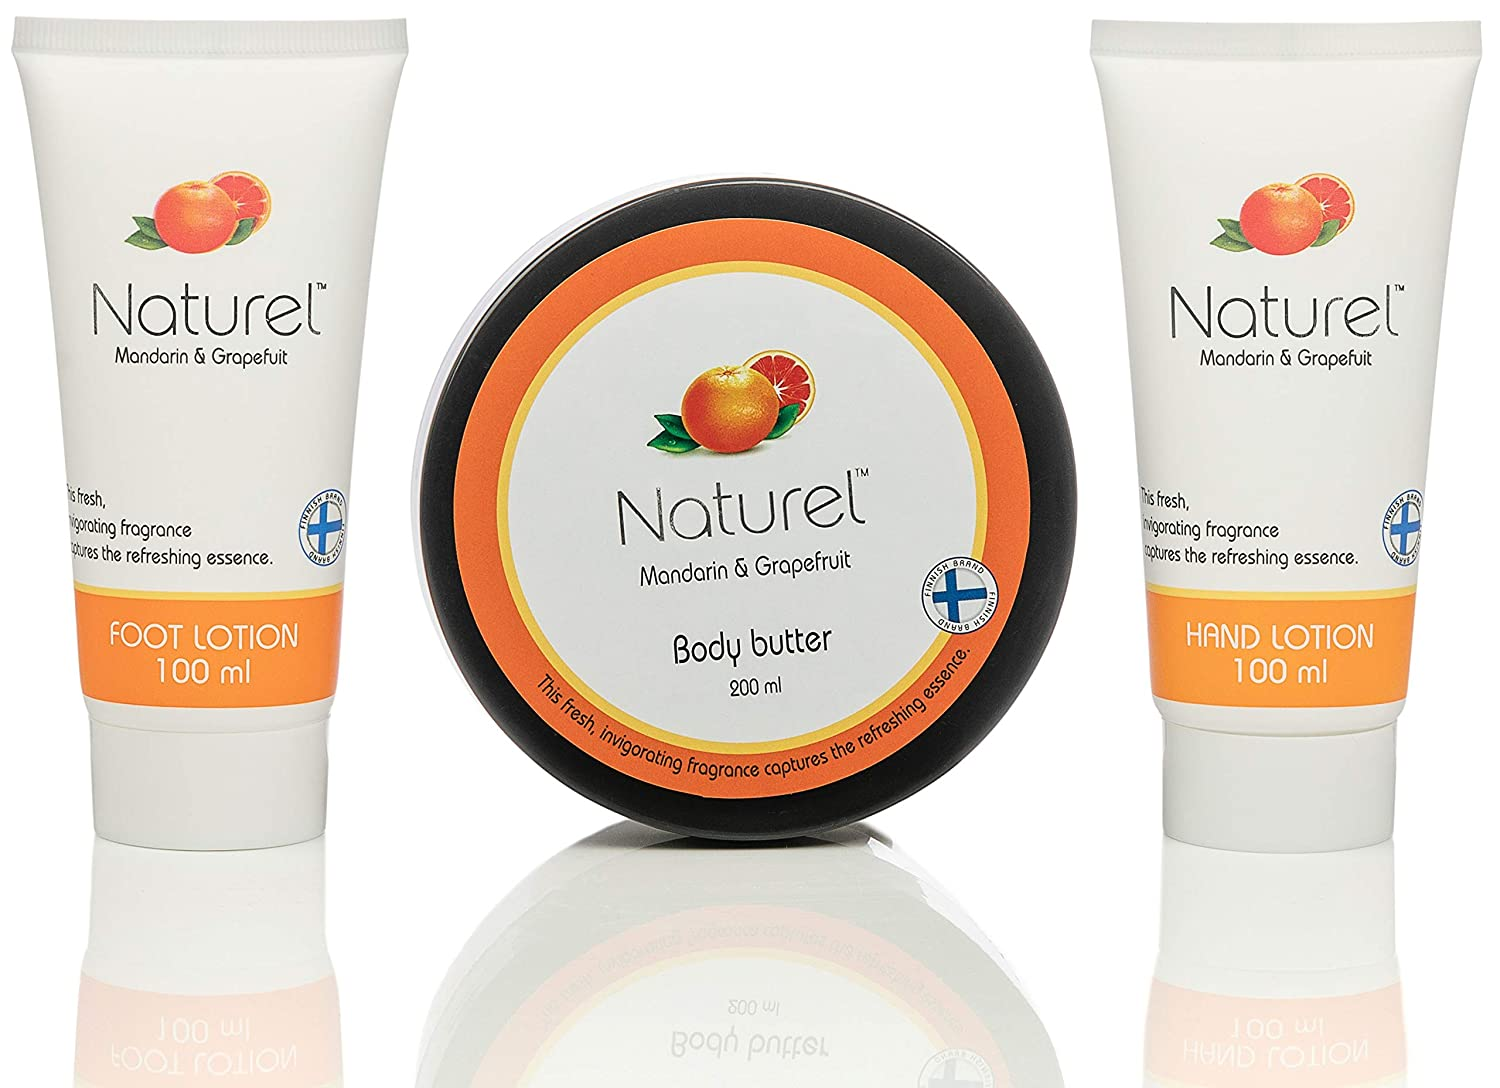 Grapefruit Lotion Body Butter set - Beauty Boxes Gift for Women - Hand Cream and Foot Lotion